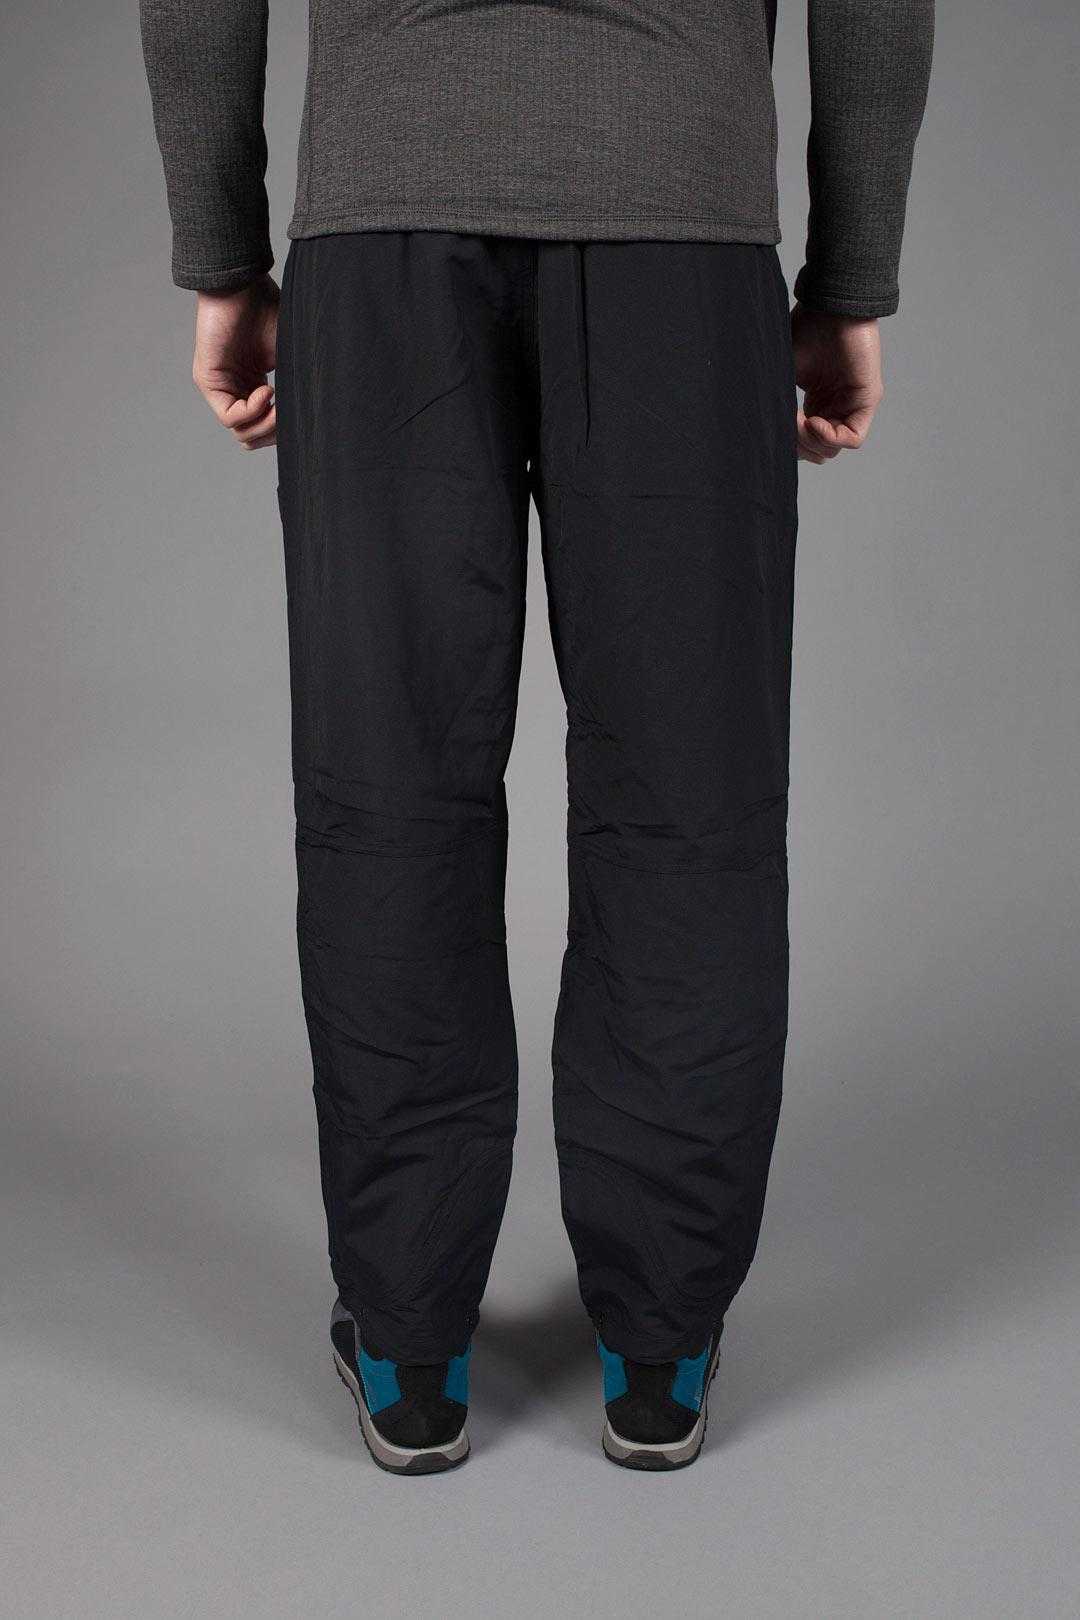 Rab Vapour-Rise Trail Trousers for Men in Black